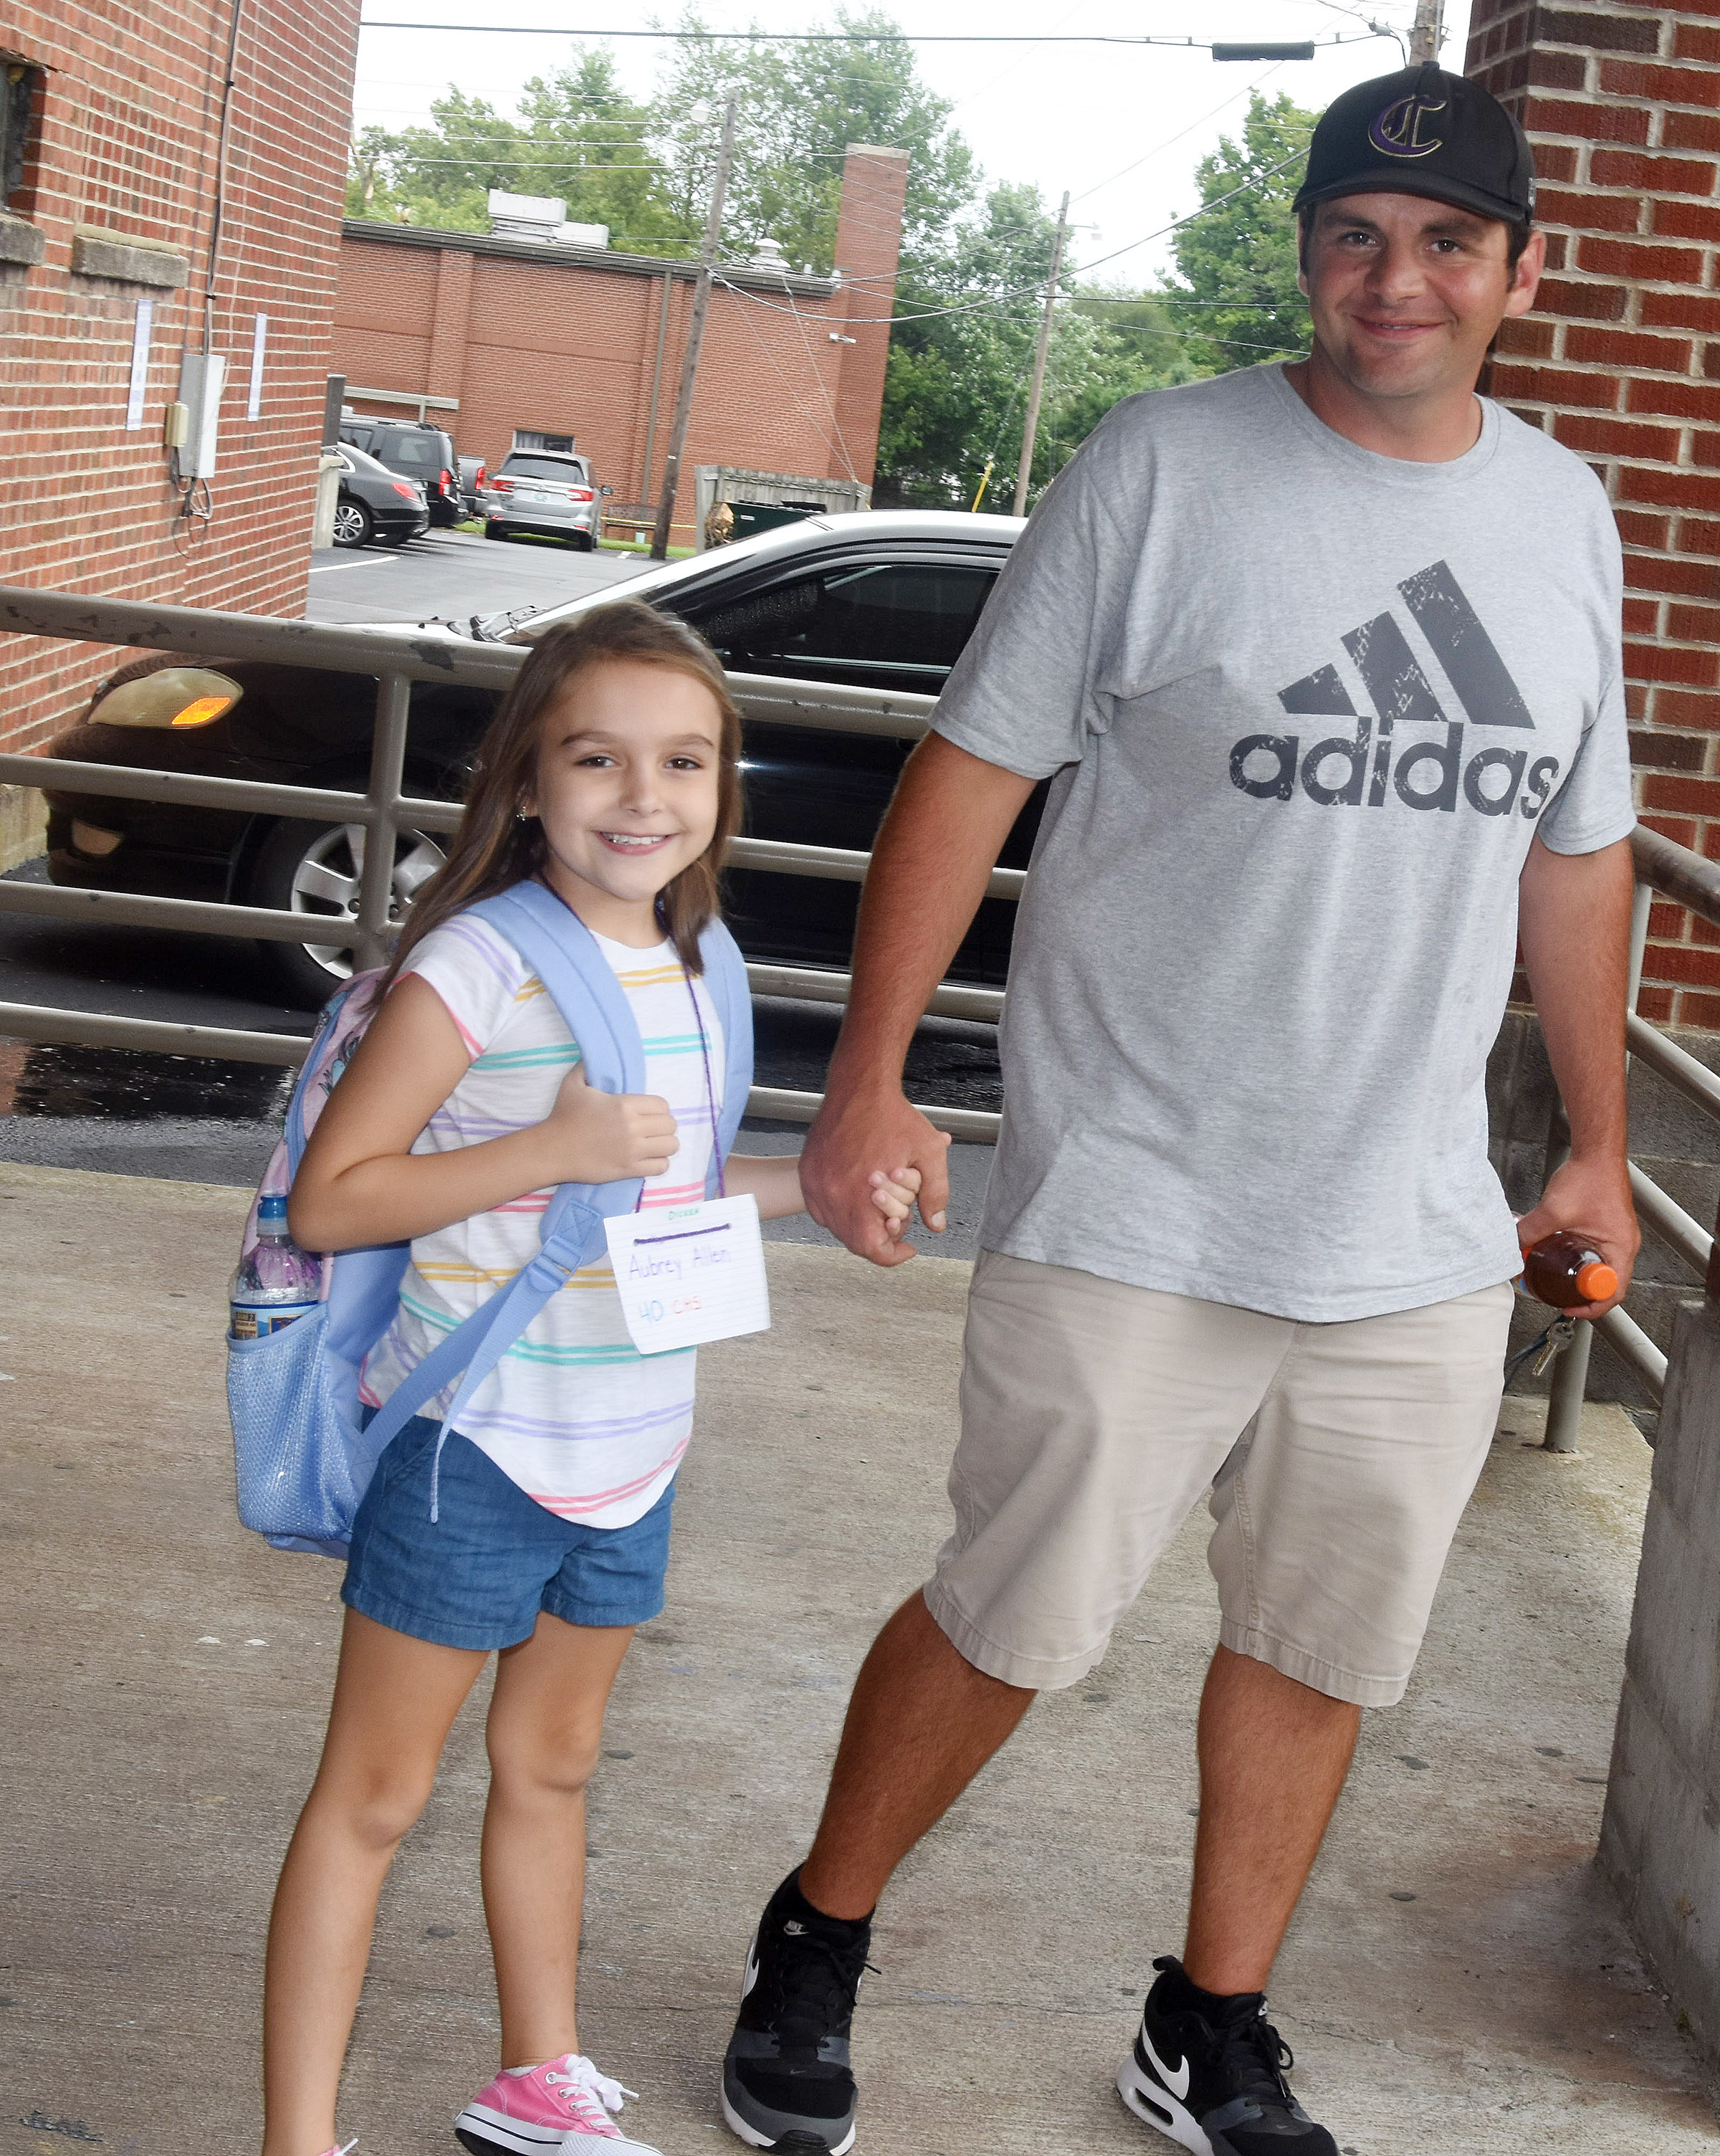 Campbellsville Elementary School second-grader Aubrey Allen smiles with her father, Tommy, the head custodian at Campbellsville High School, at the end of the school day.